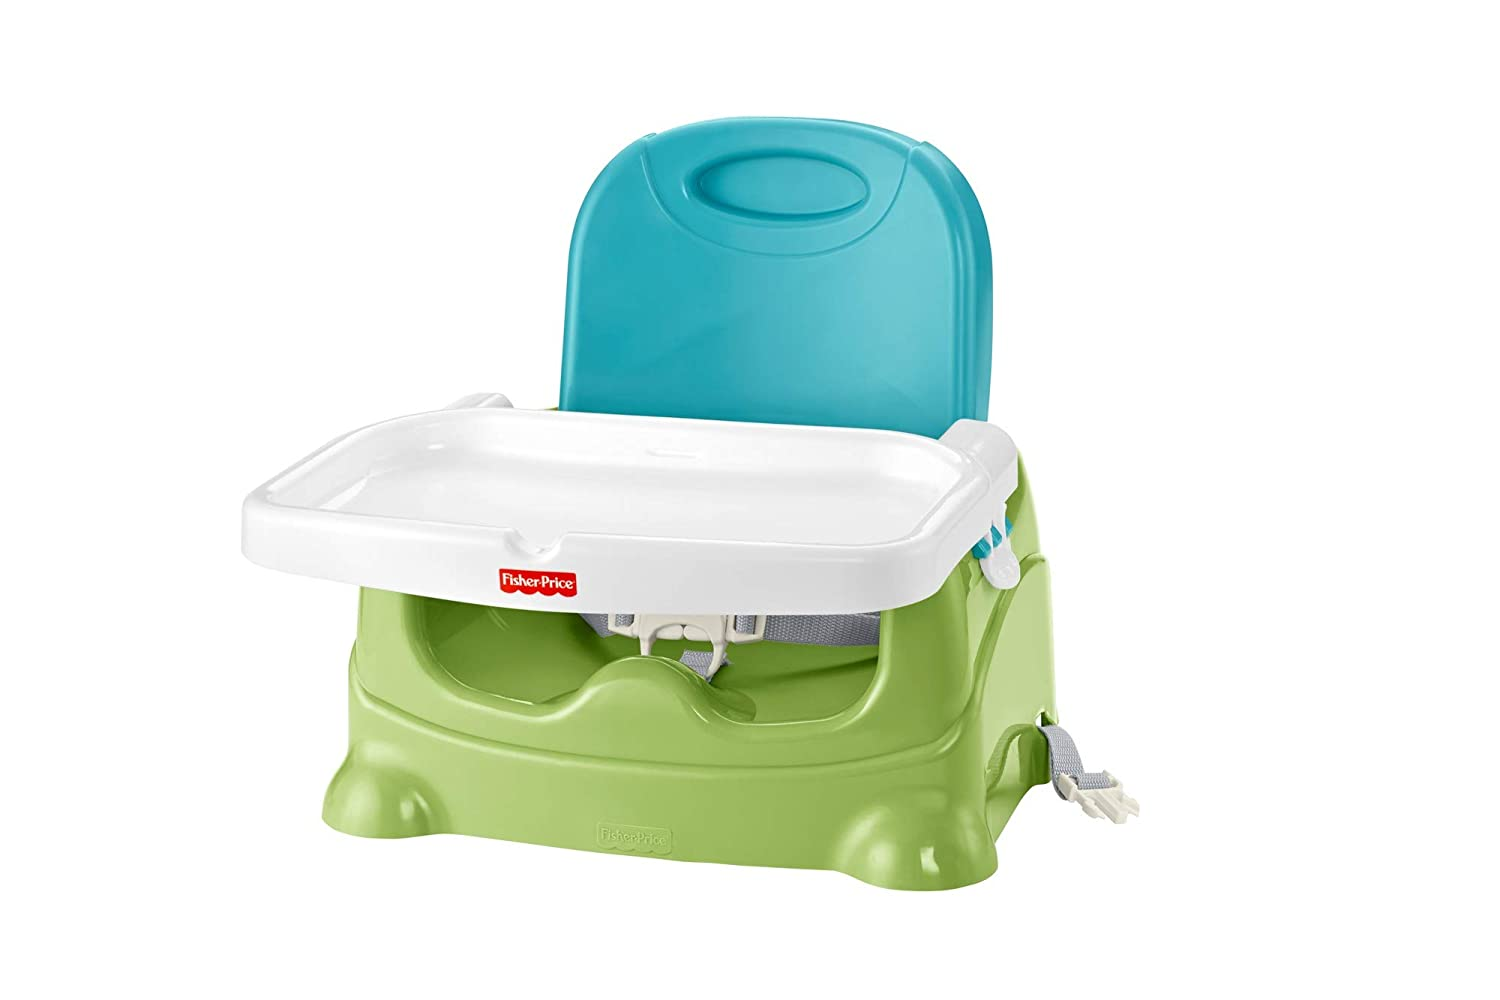 Top 10 Best Baby Booster Seat For Eating (2020 Reviews & Buying Guide) 5